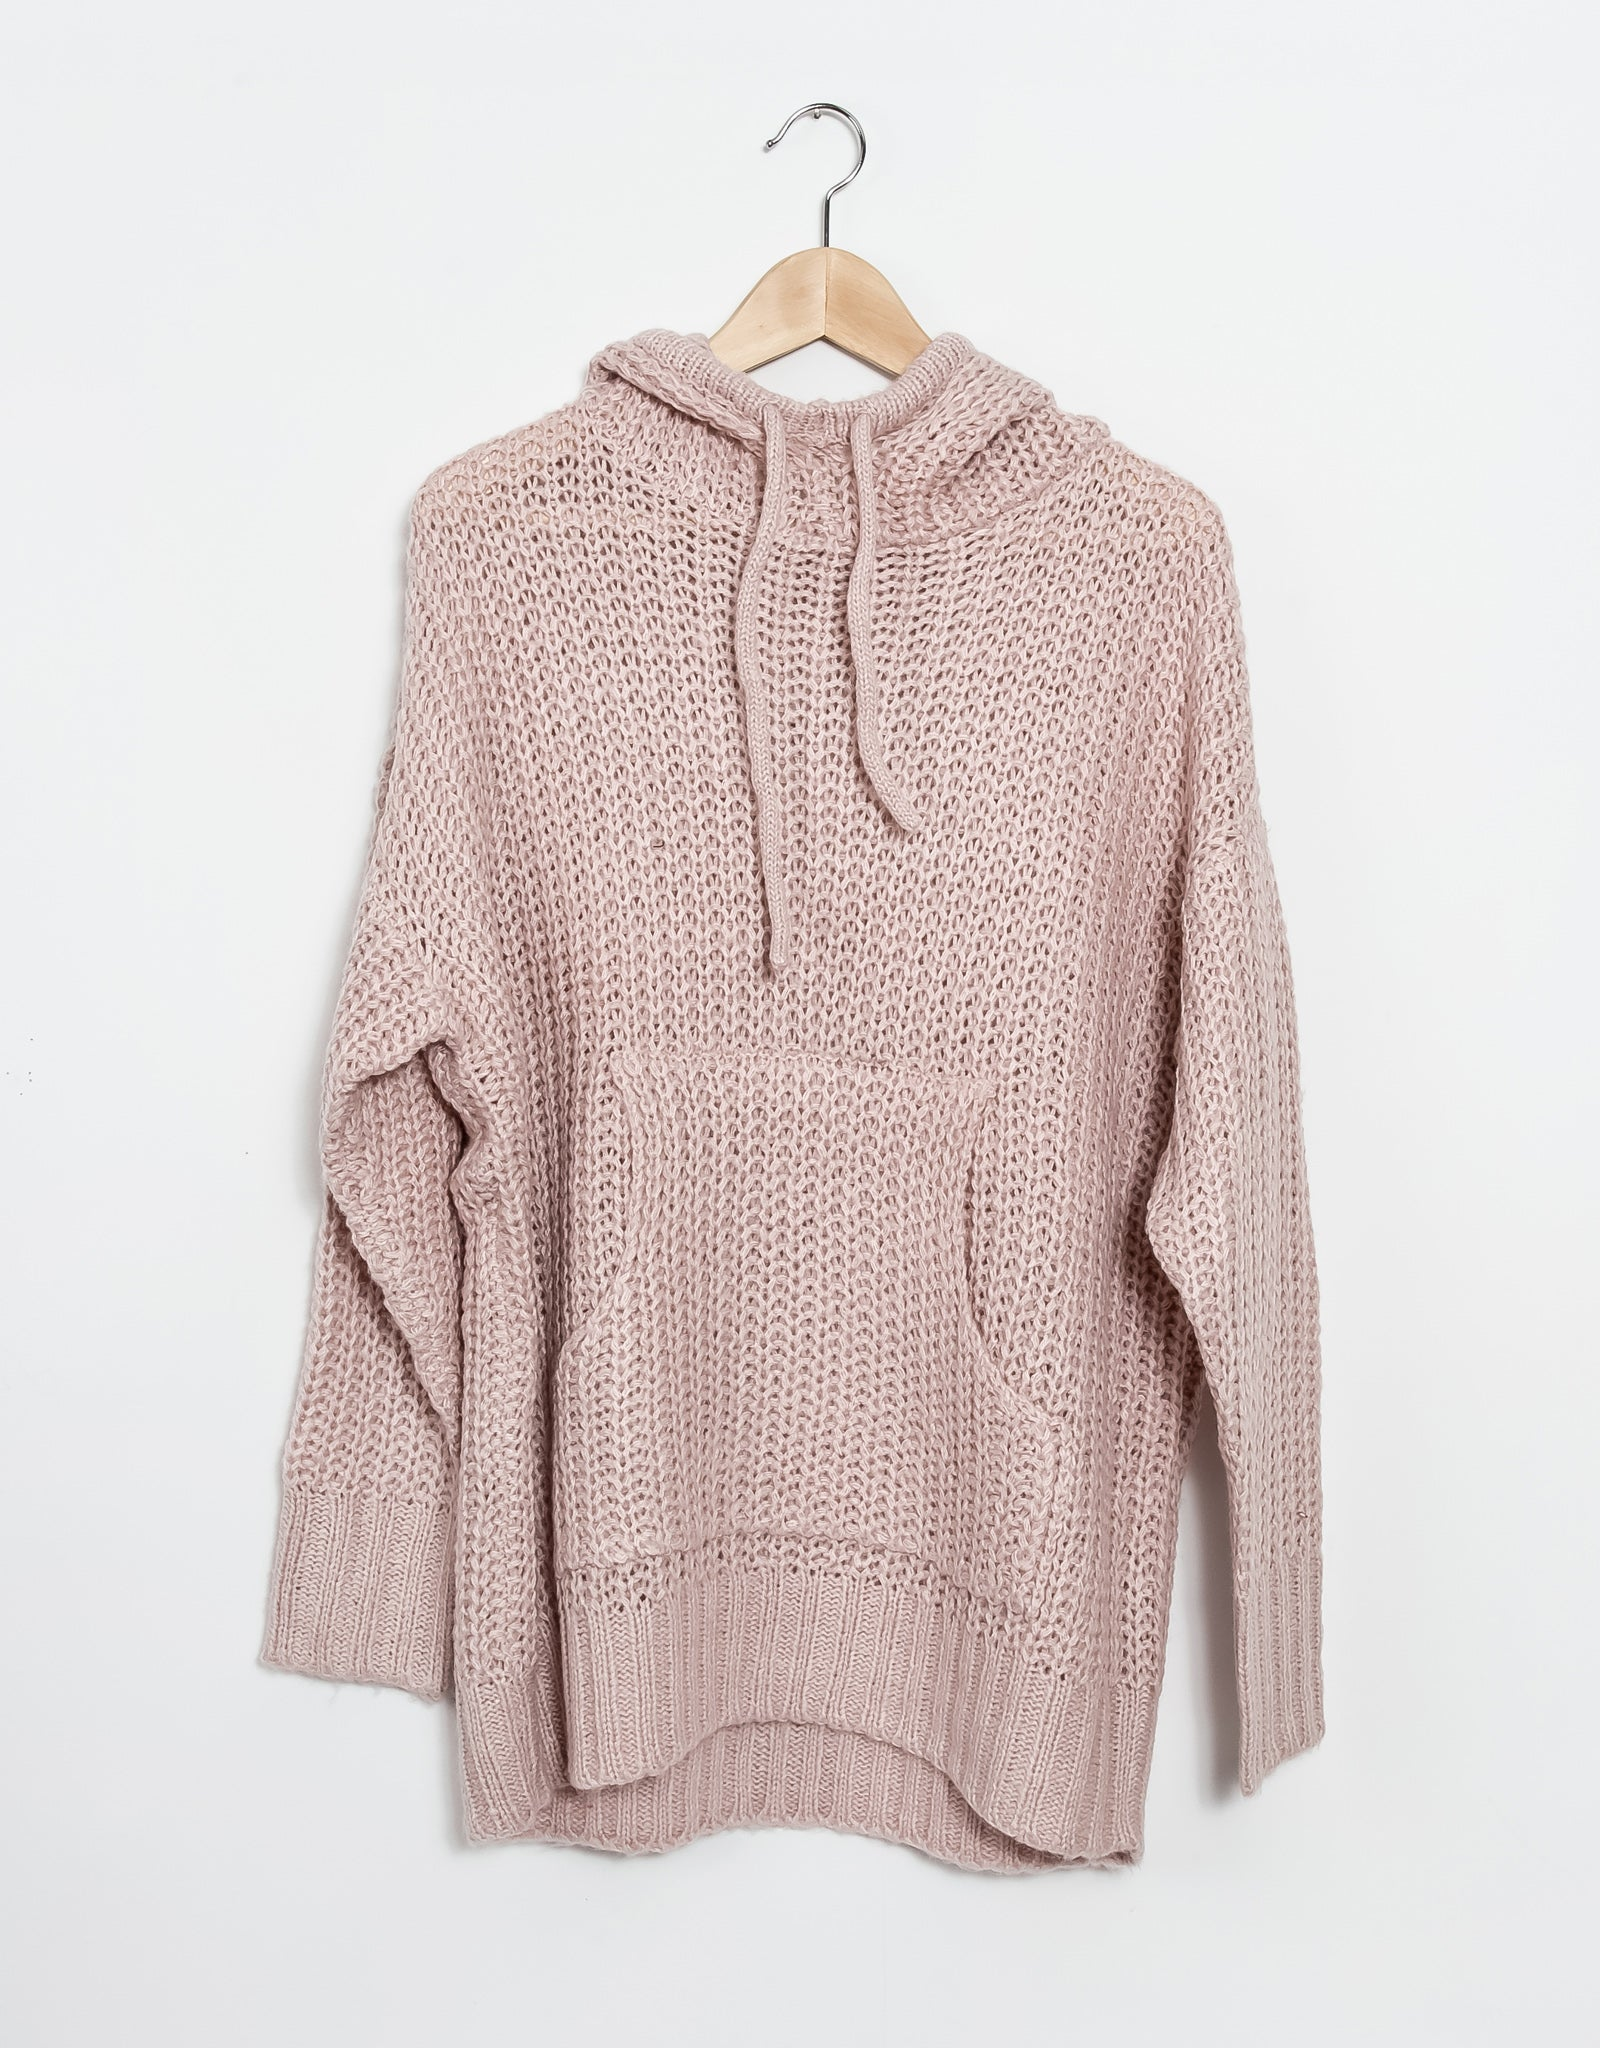 Jordan Hooded Sweater - Pink